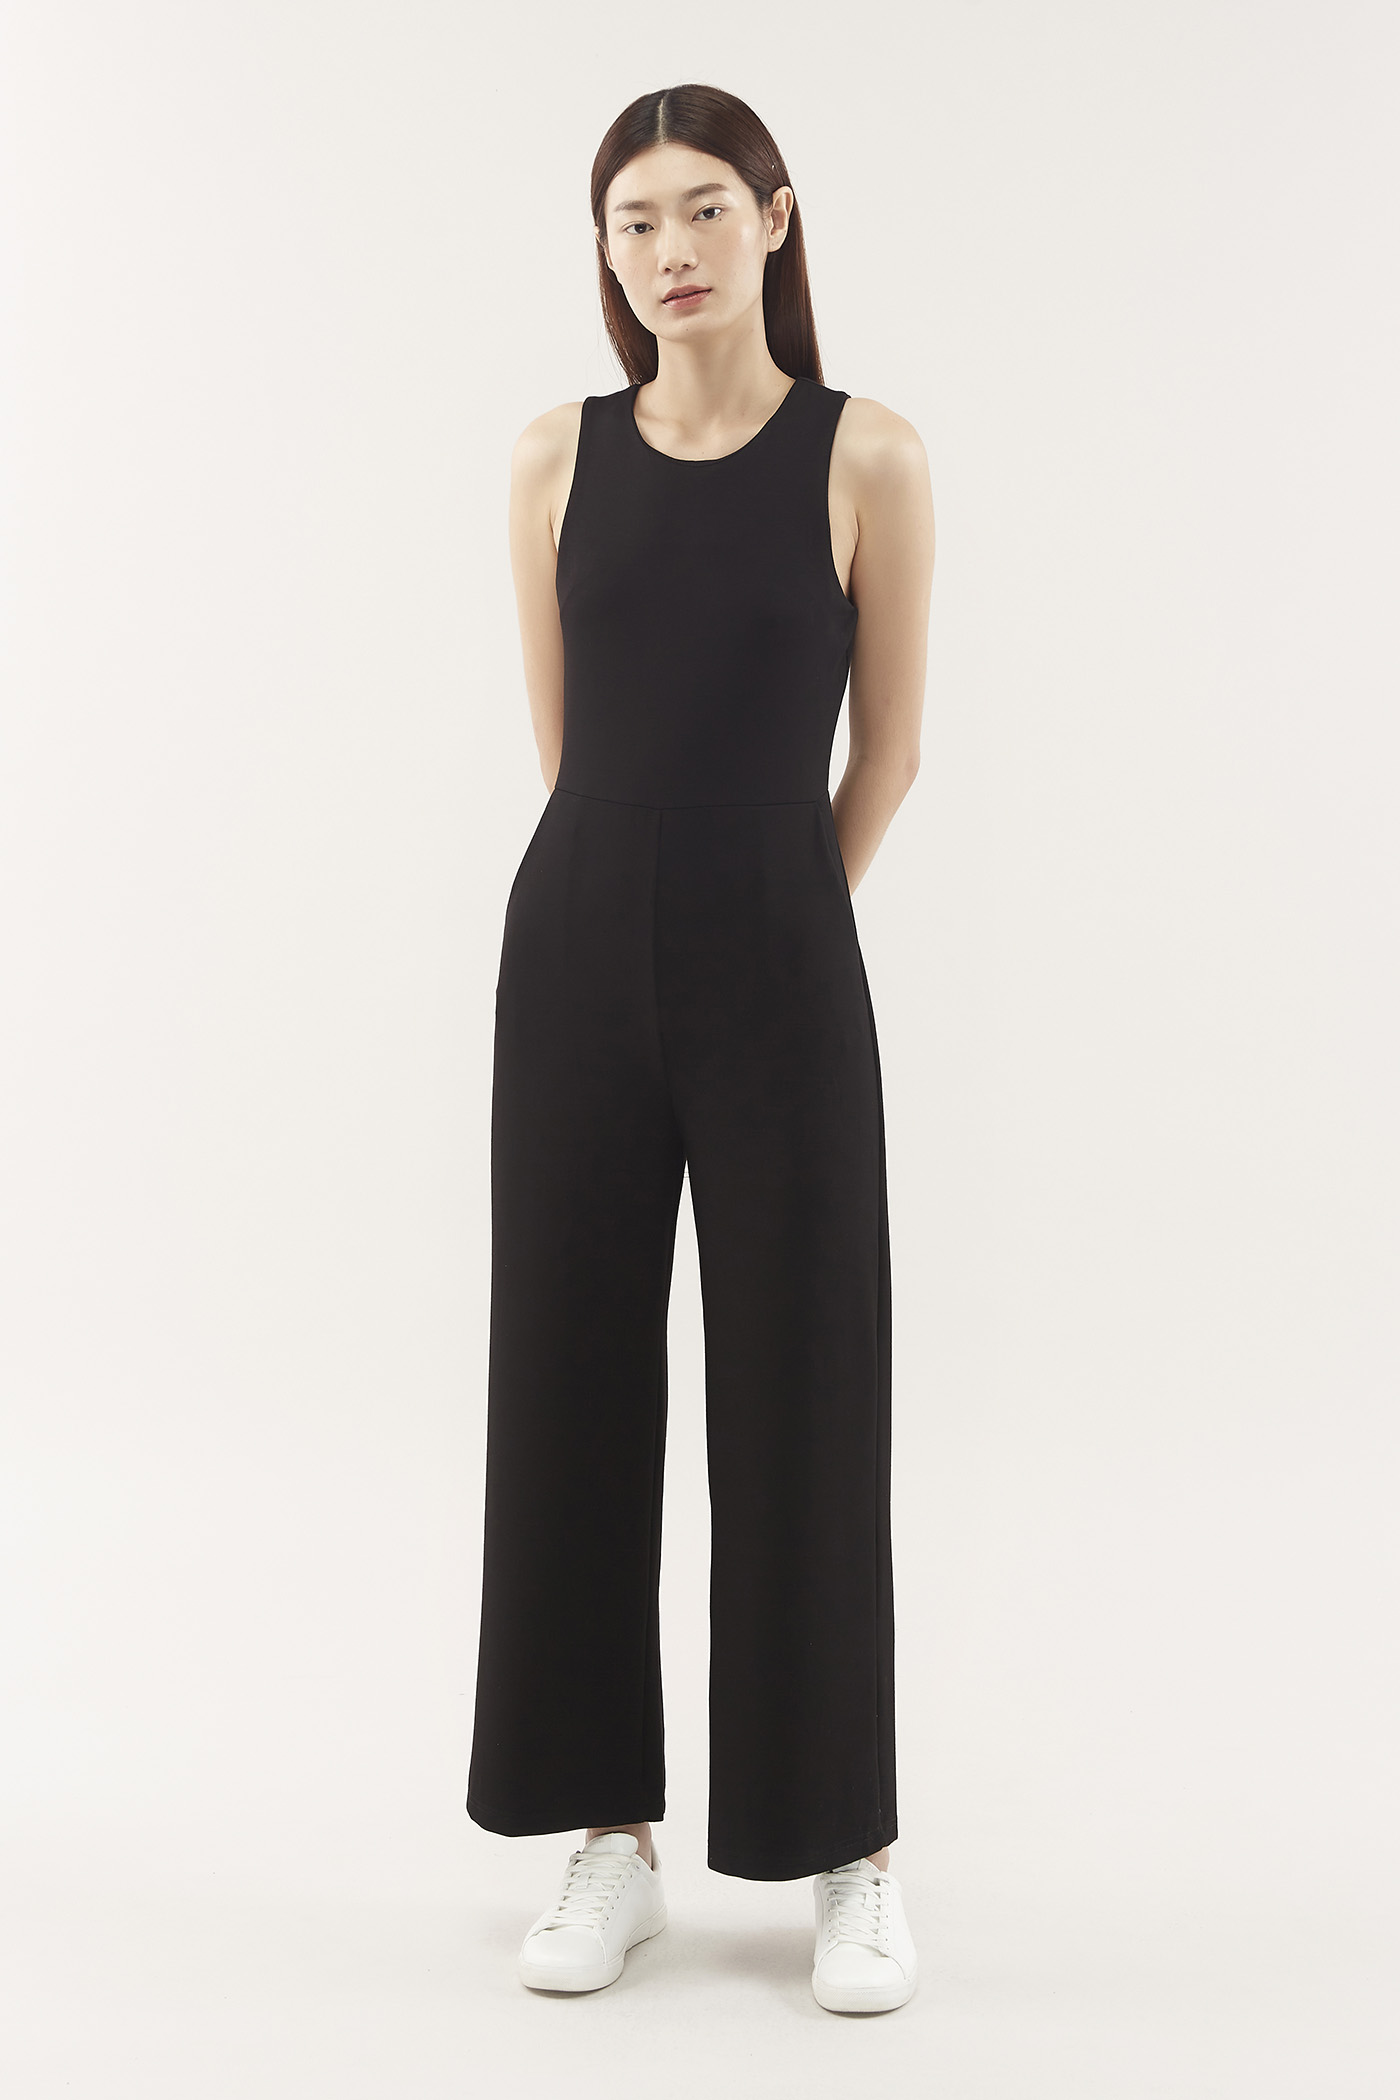 Nevada Jumpsuit